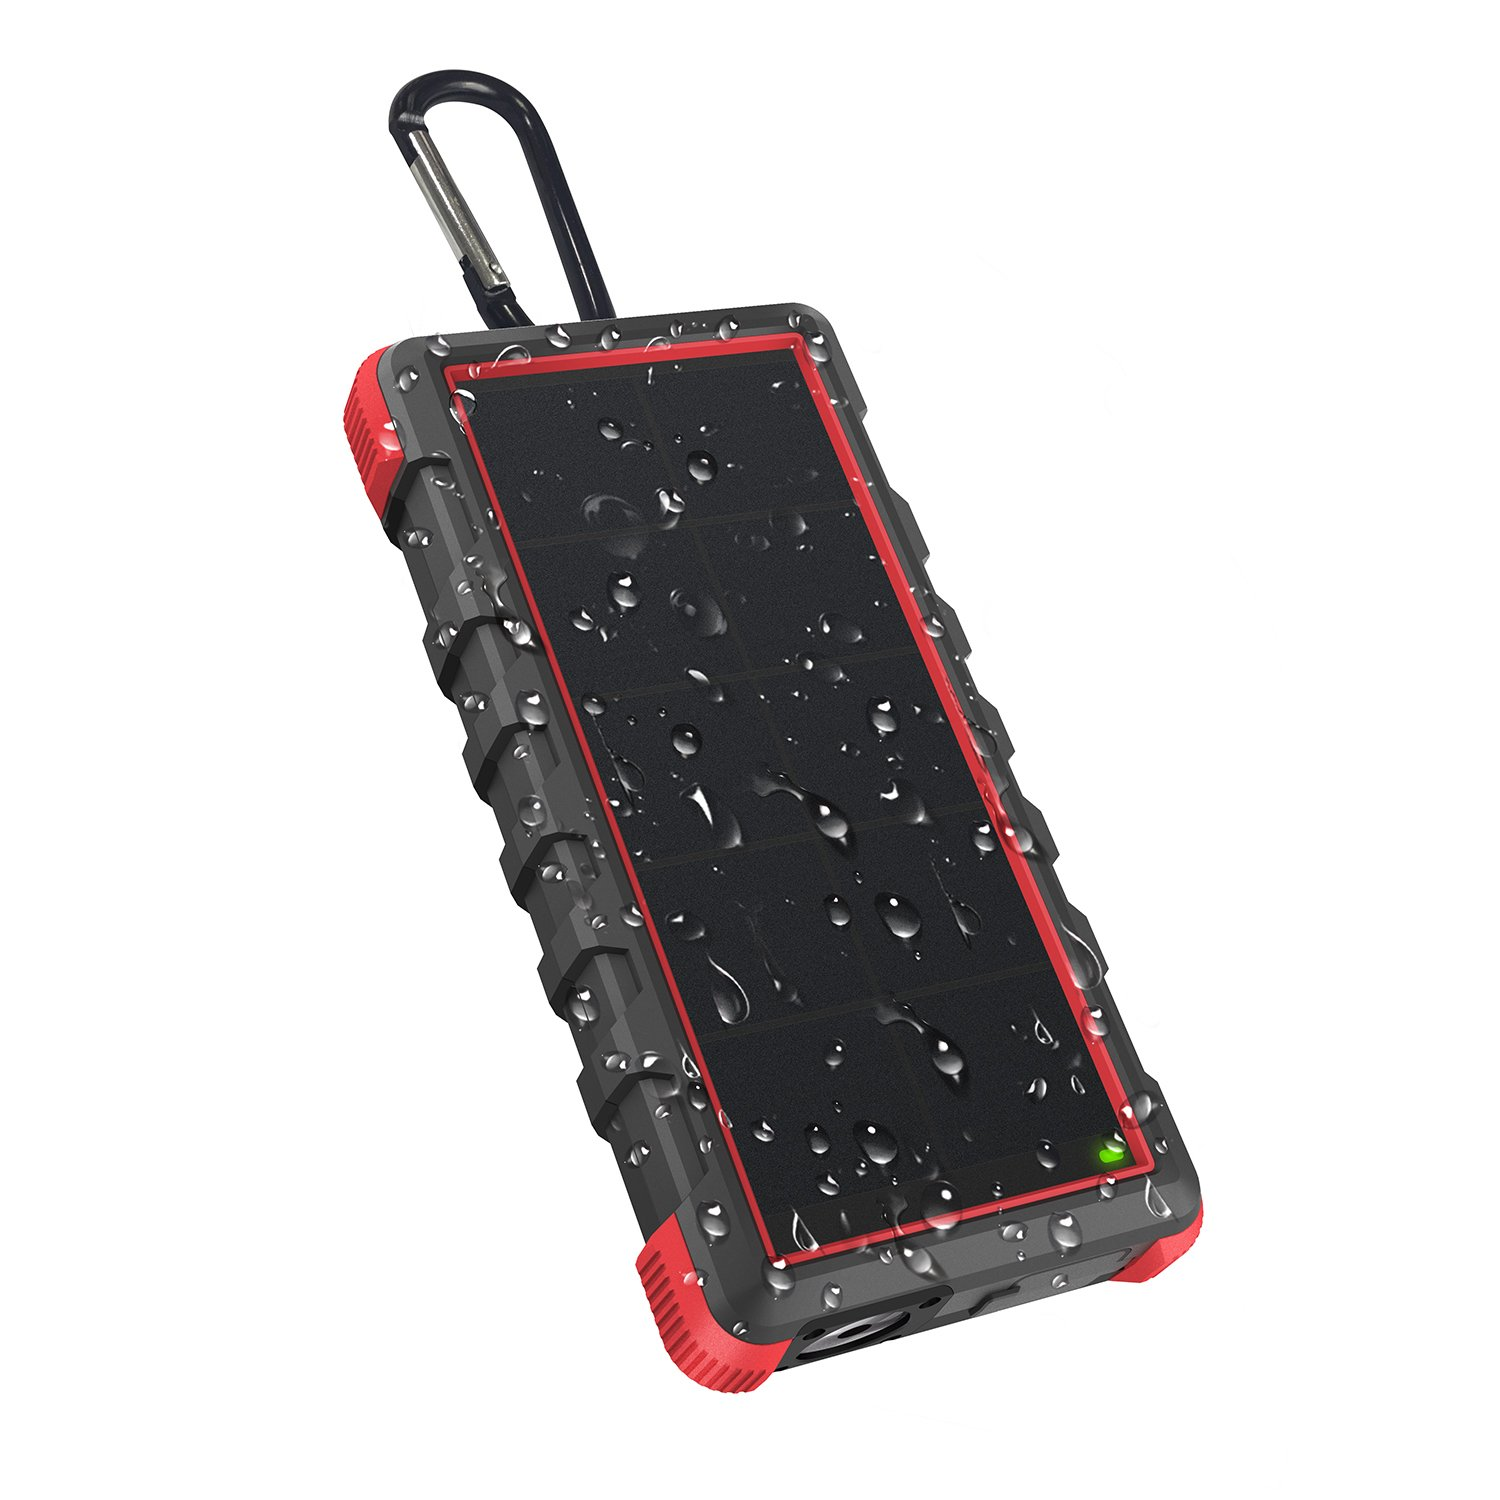 [Quick Charge] OUTXE 24000mAh Rugged Solar Charger with Flashlight Dual Input Type C & Micro USB by OUTXE